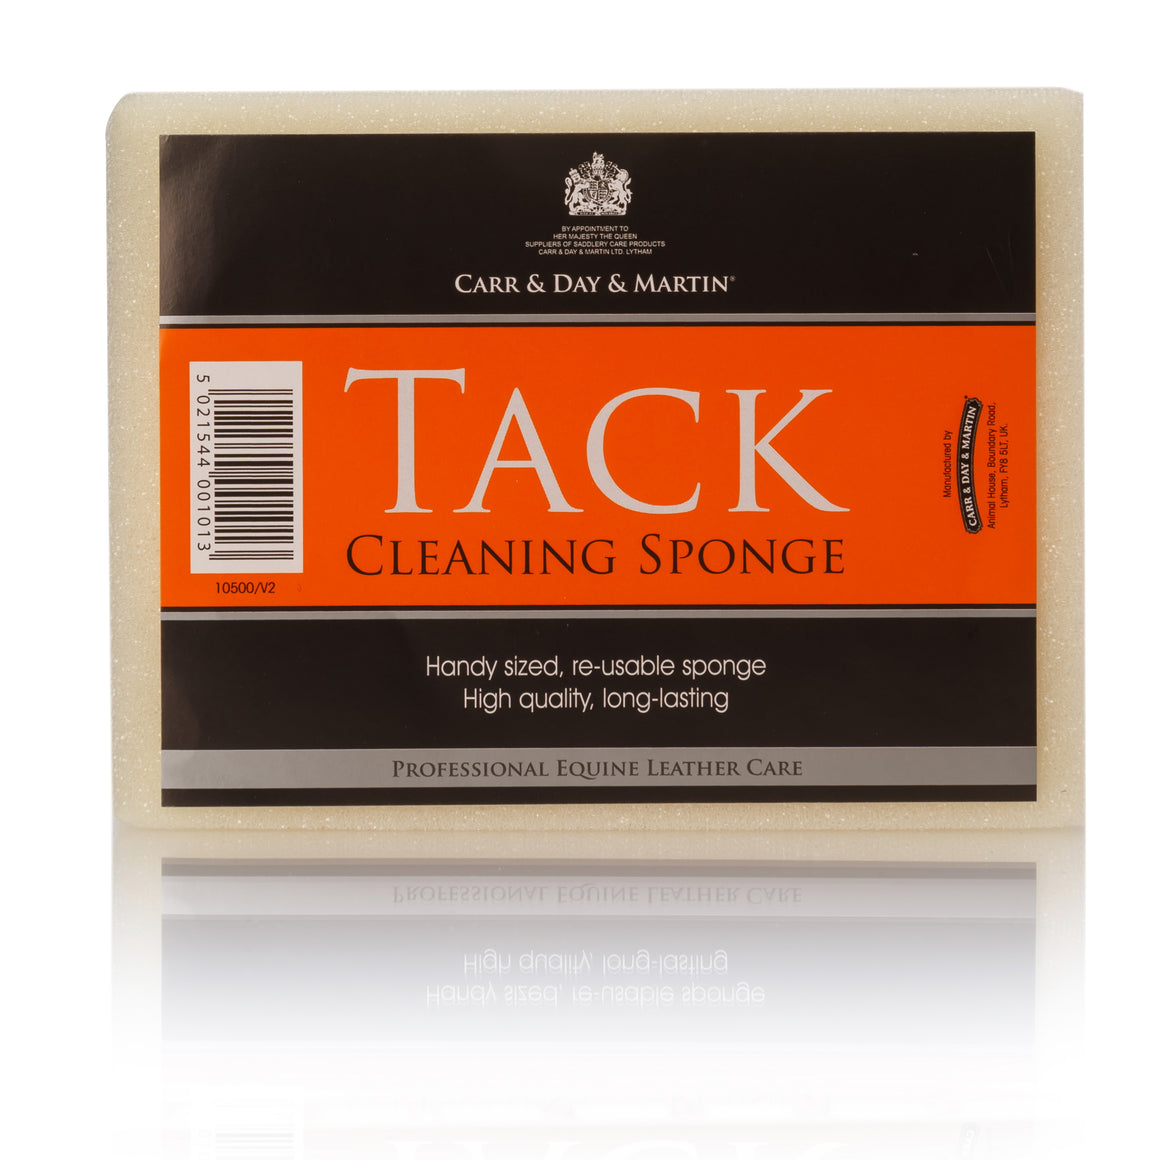 Carr & Day & Martin Tack Cleaning Sponge - RedMillsStore.ie